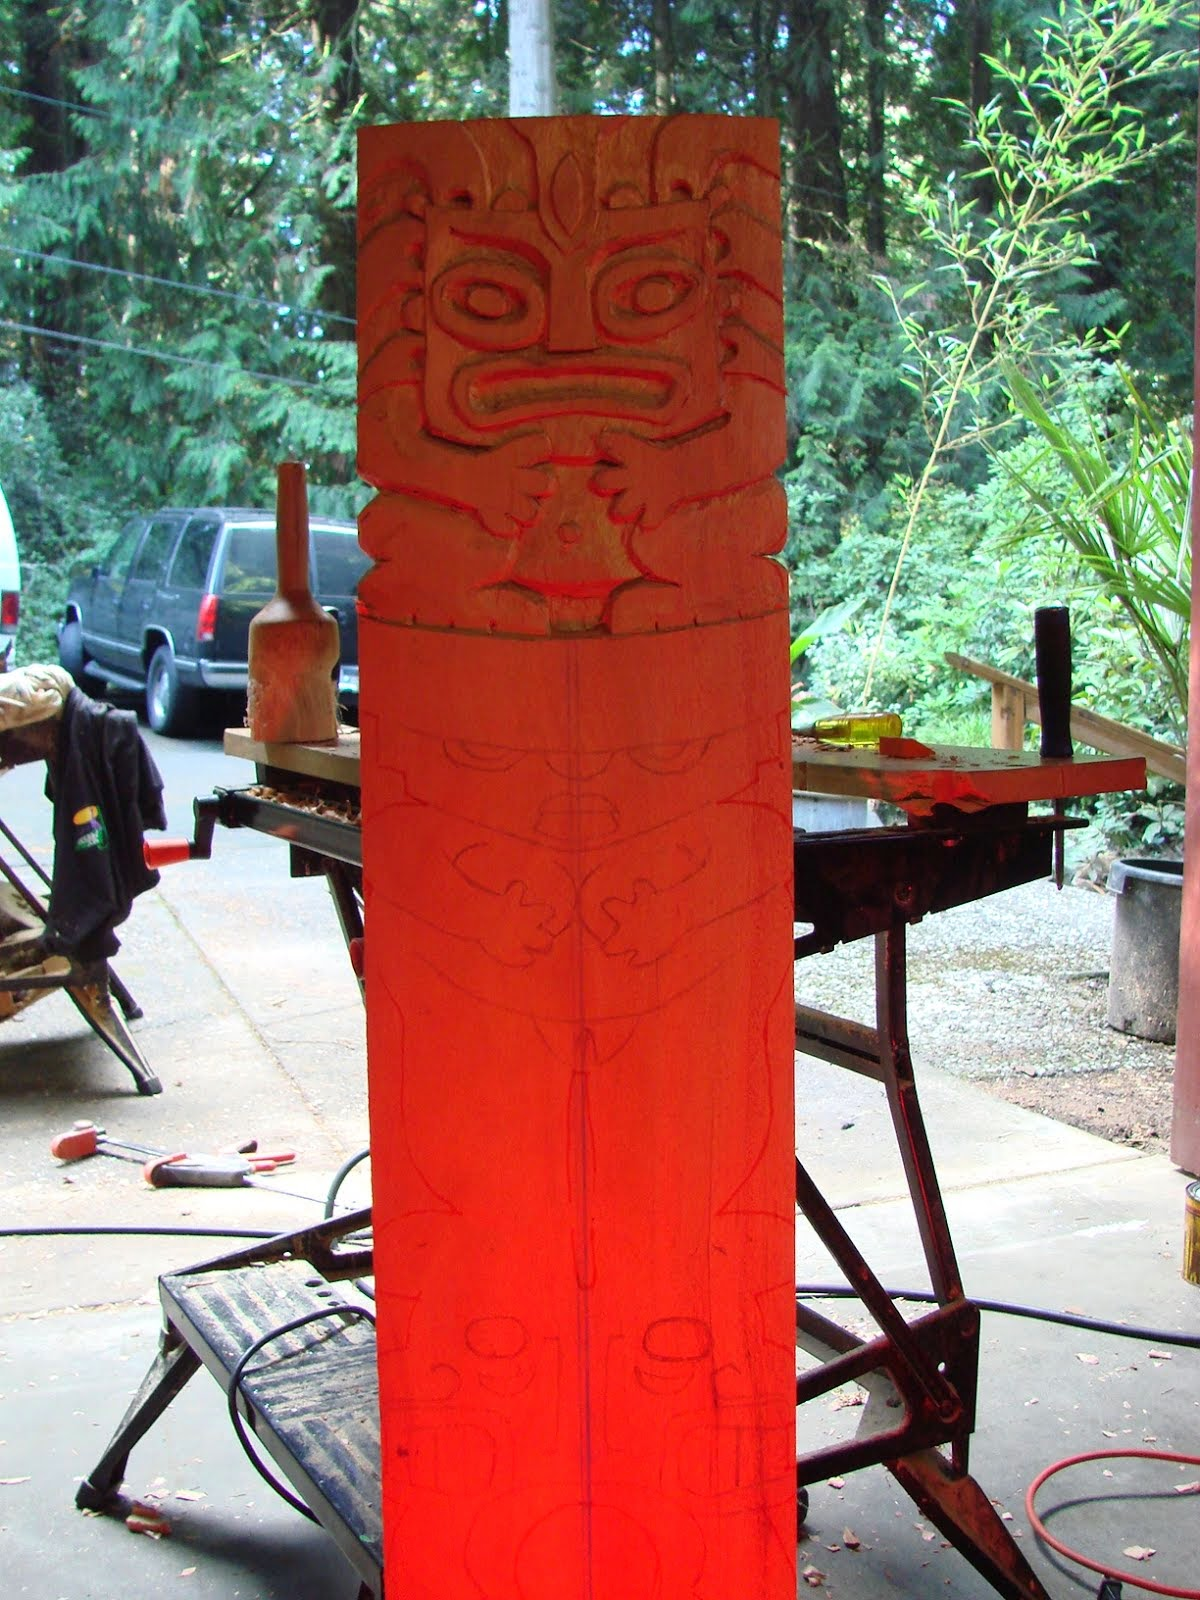 I imagined it would take 5 hours to carve this top piece.